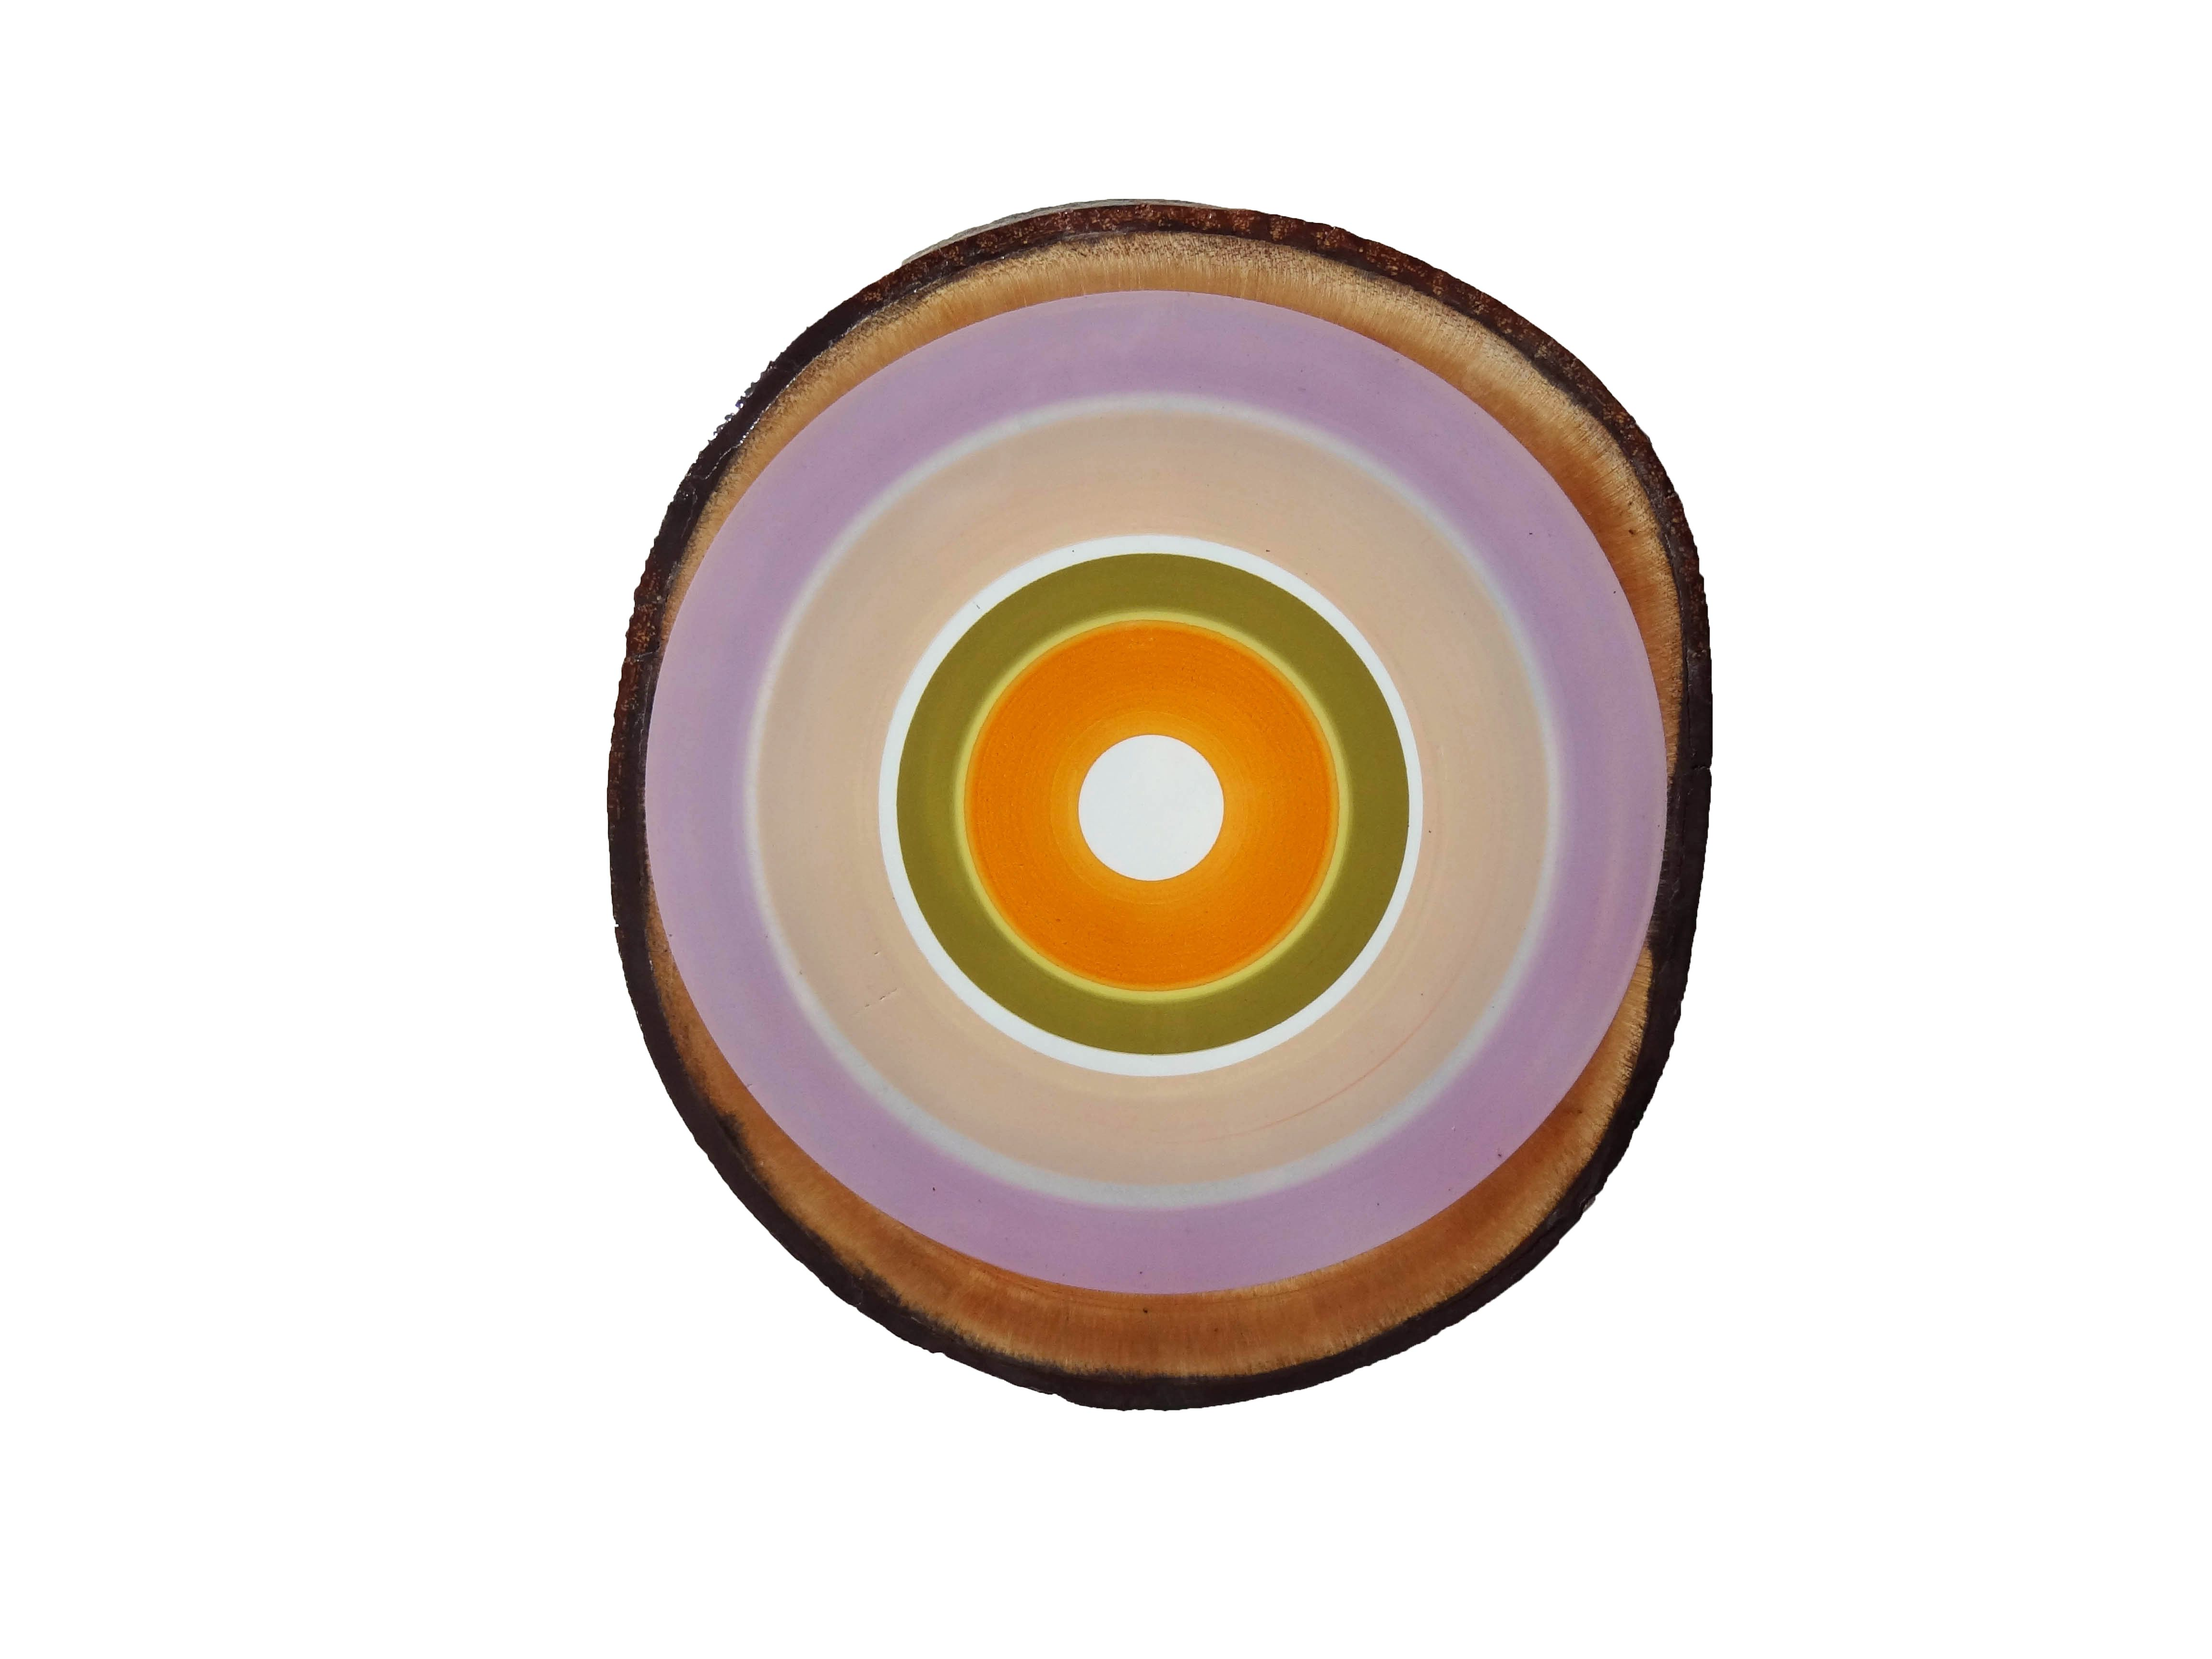 Wood slice large pa is a product from the colored circles